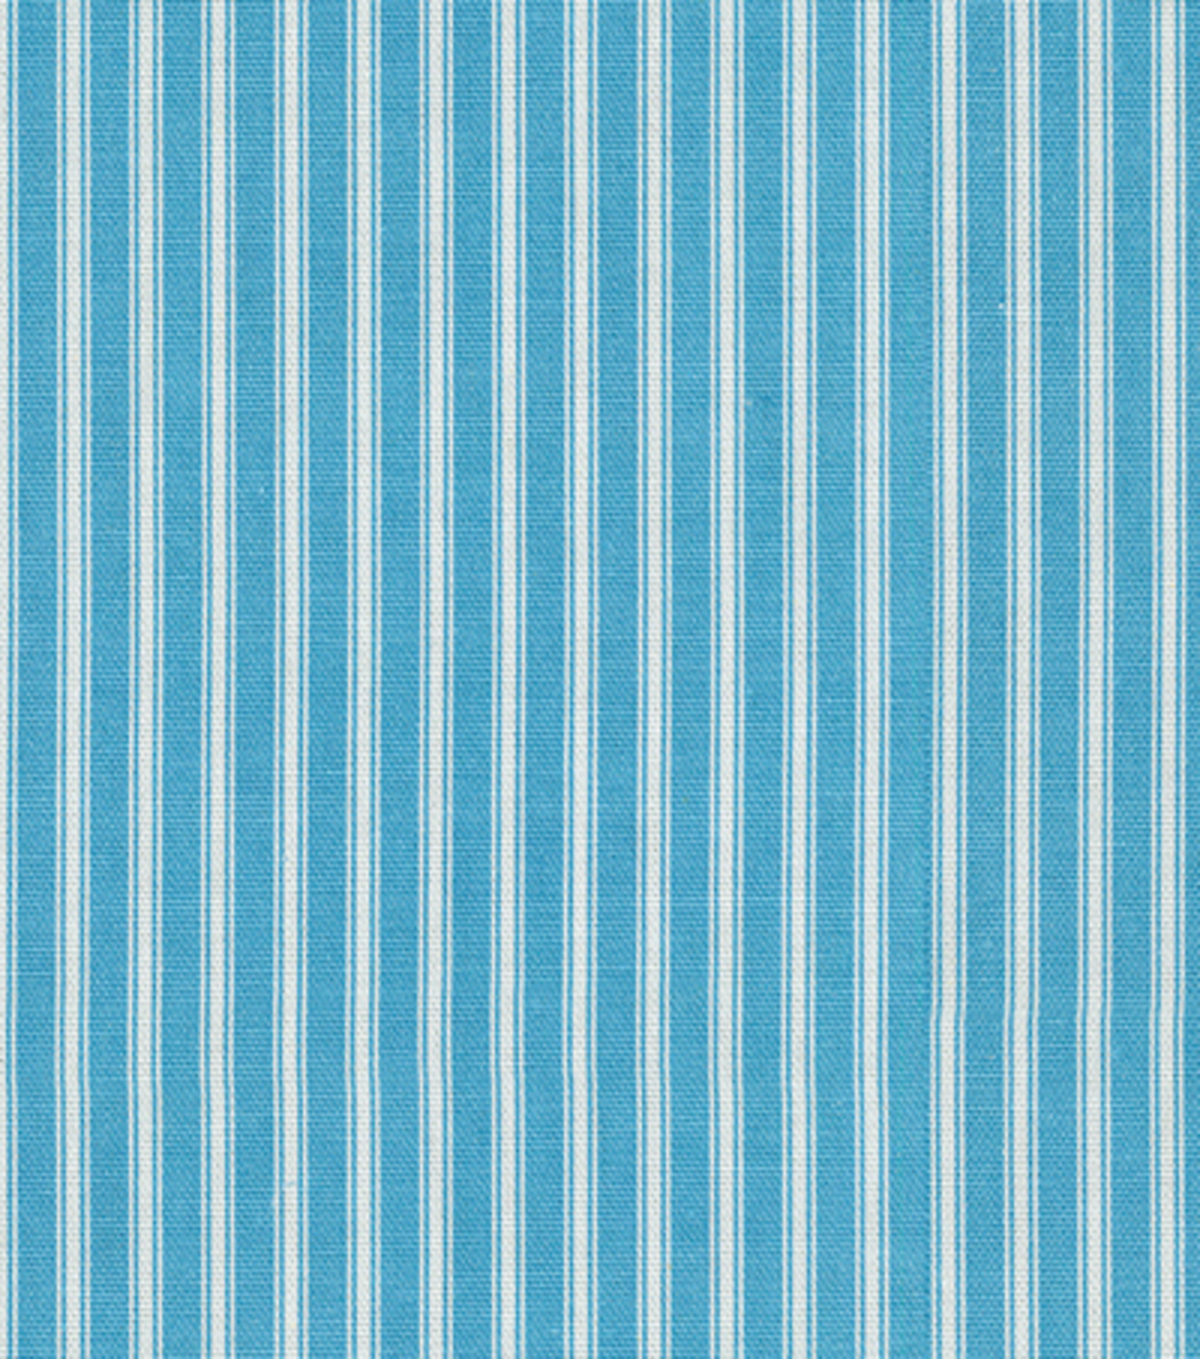 Home Decor 8\u0022x8\u0022 Fabric Swatch-Covington Wallace